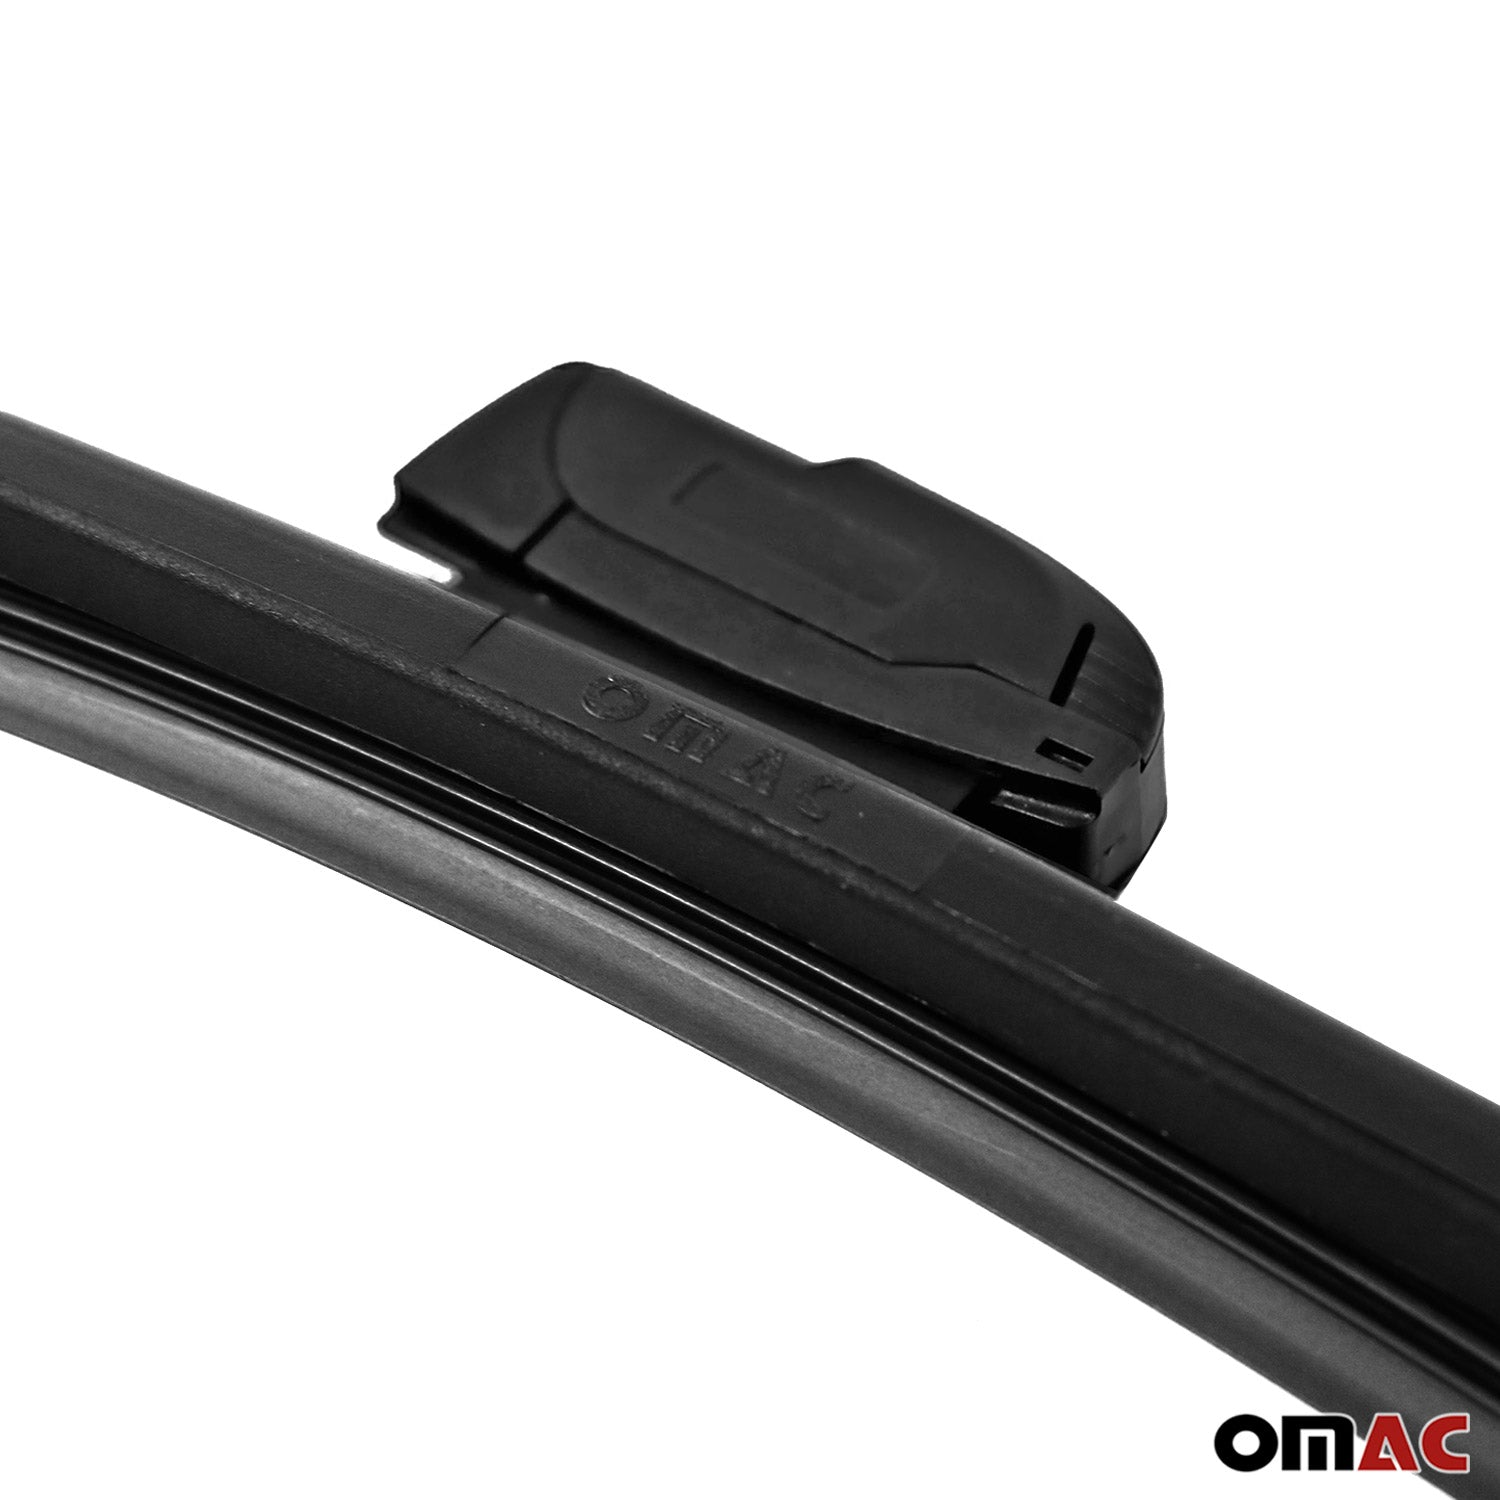 "OMAC Premium Wiper Blades 14"" & 26'' Combo Pack for Buick Encore 2013-2020"